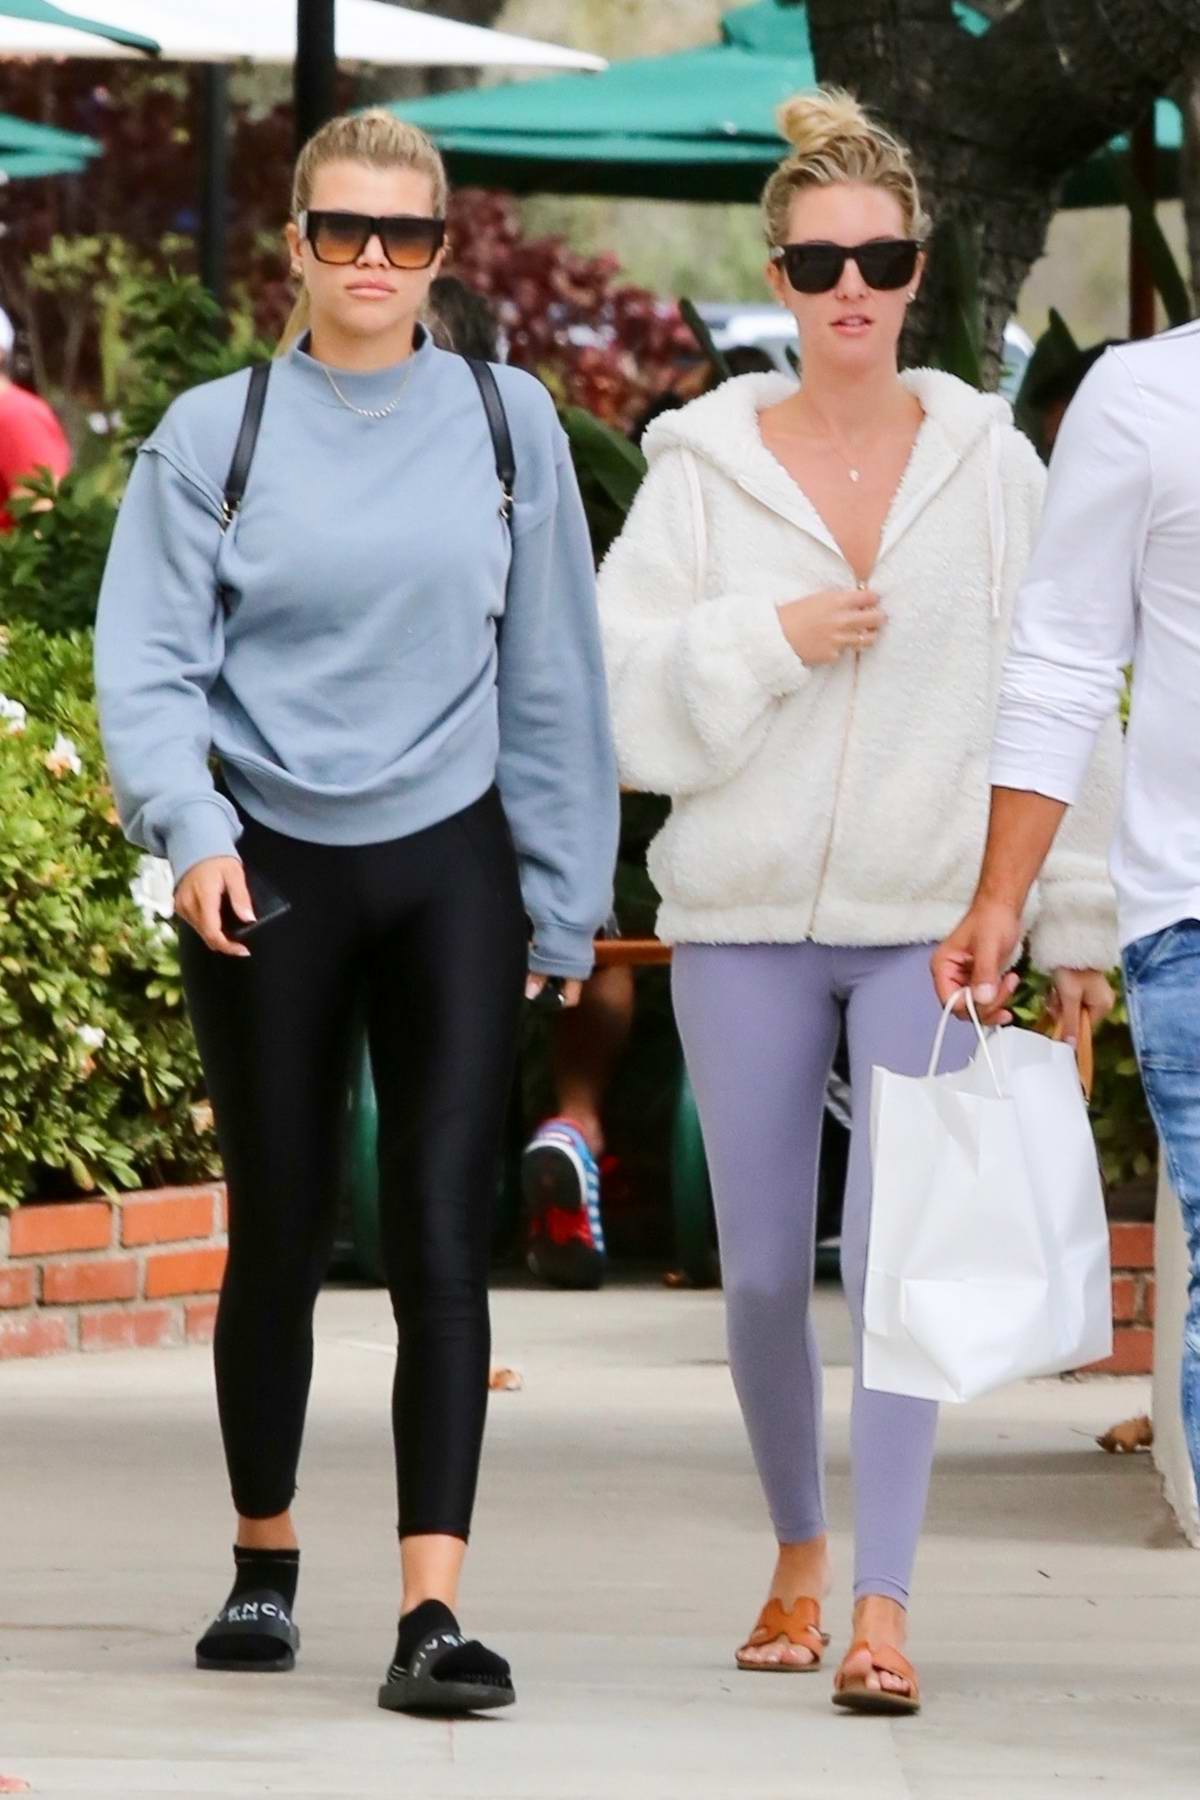 Sofia Richie keeps it casual with a grey sweatshirt and black leggings while out for lunch with friends in Malibu, California